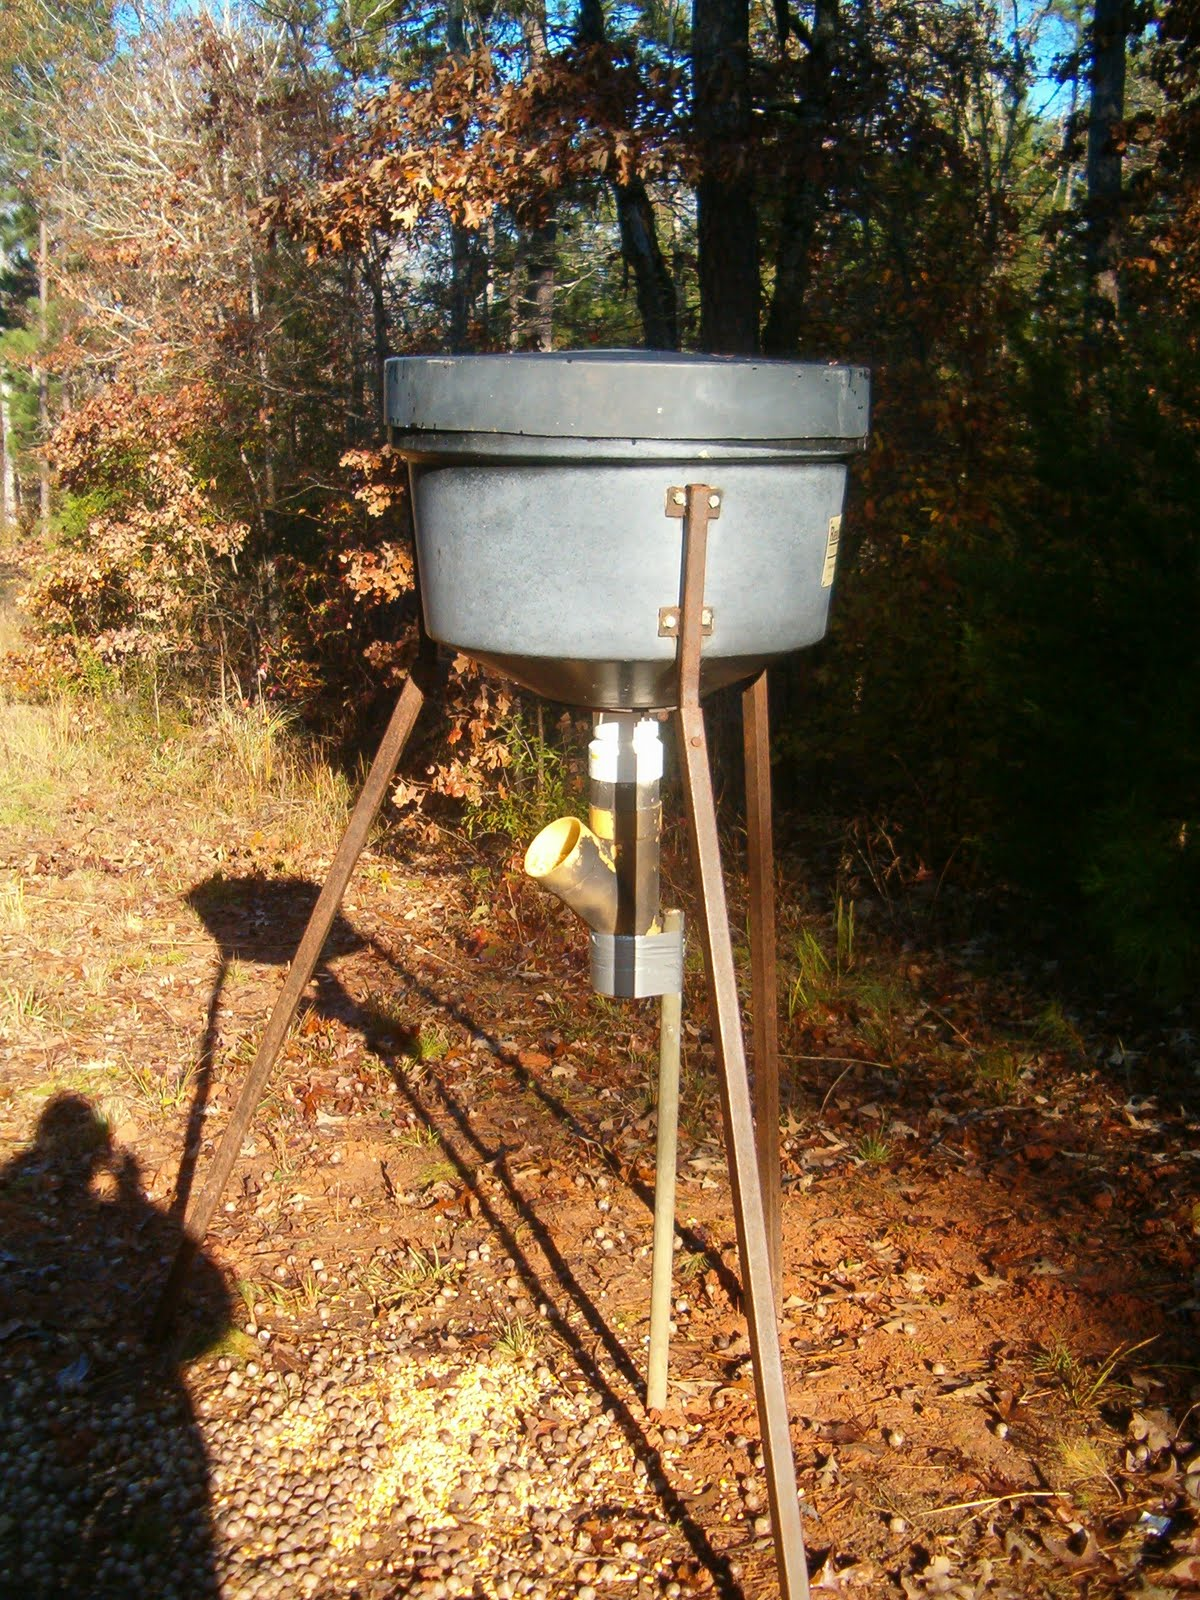 feeder of lion cam photo boss game taking outdoor whitetail feeders moment deer mountain buck a dramatic